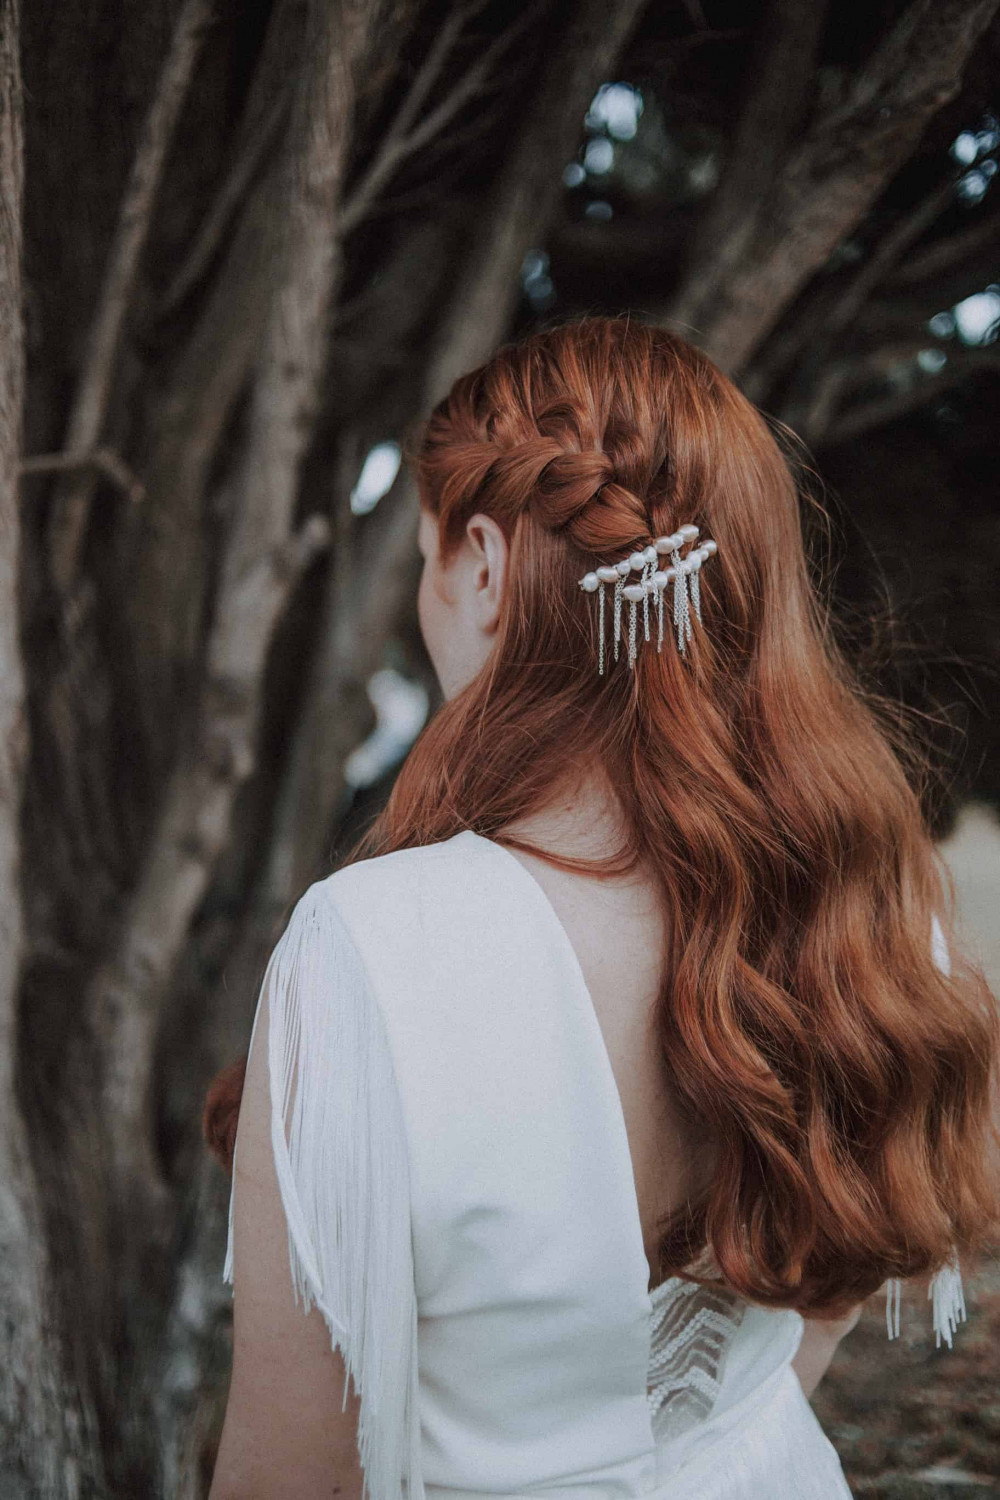 Bridal editorial (hair and hair piece made by me) - Make Me Bridal Artist: let's hair. Photography by: Sofia Spada. #boho #bridalhair #braids #loosecurls #redhead #redhair #loosehairup #loosewaves #romantichair #elegant #eleganthair #bridallook #naturalhair